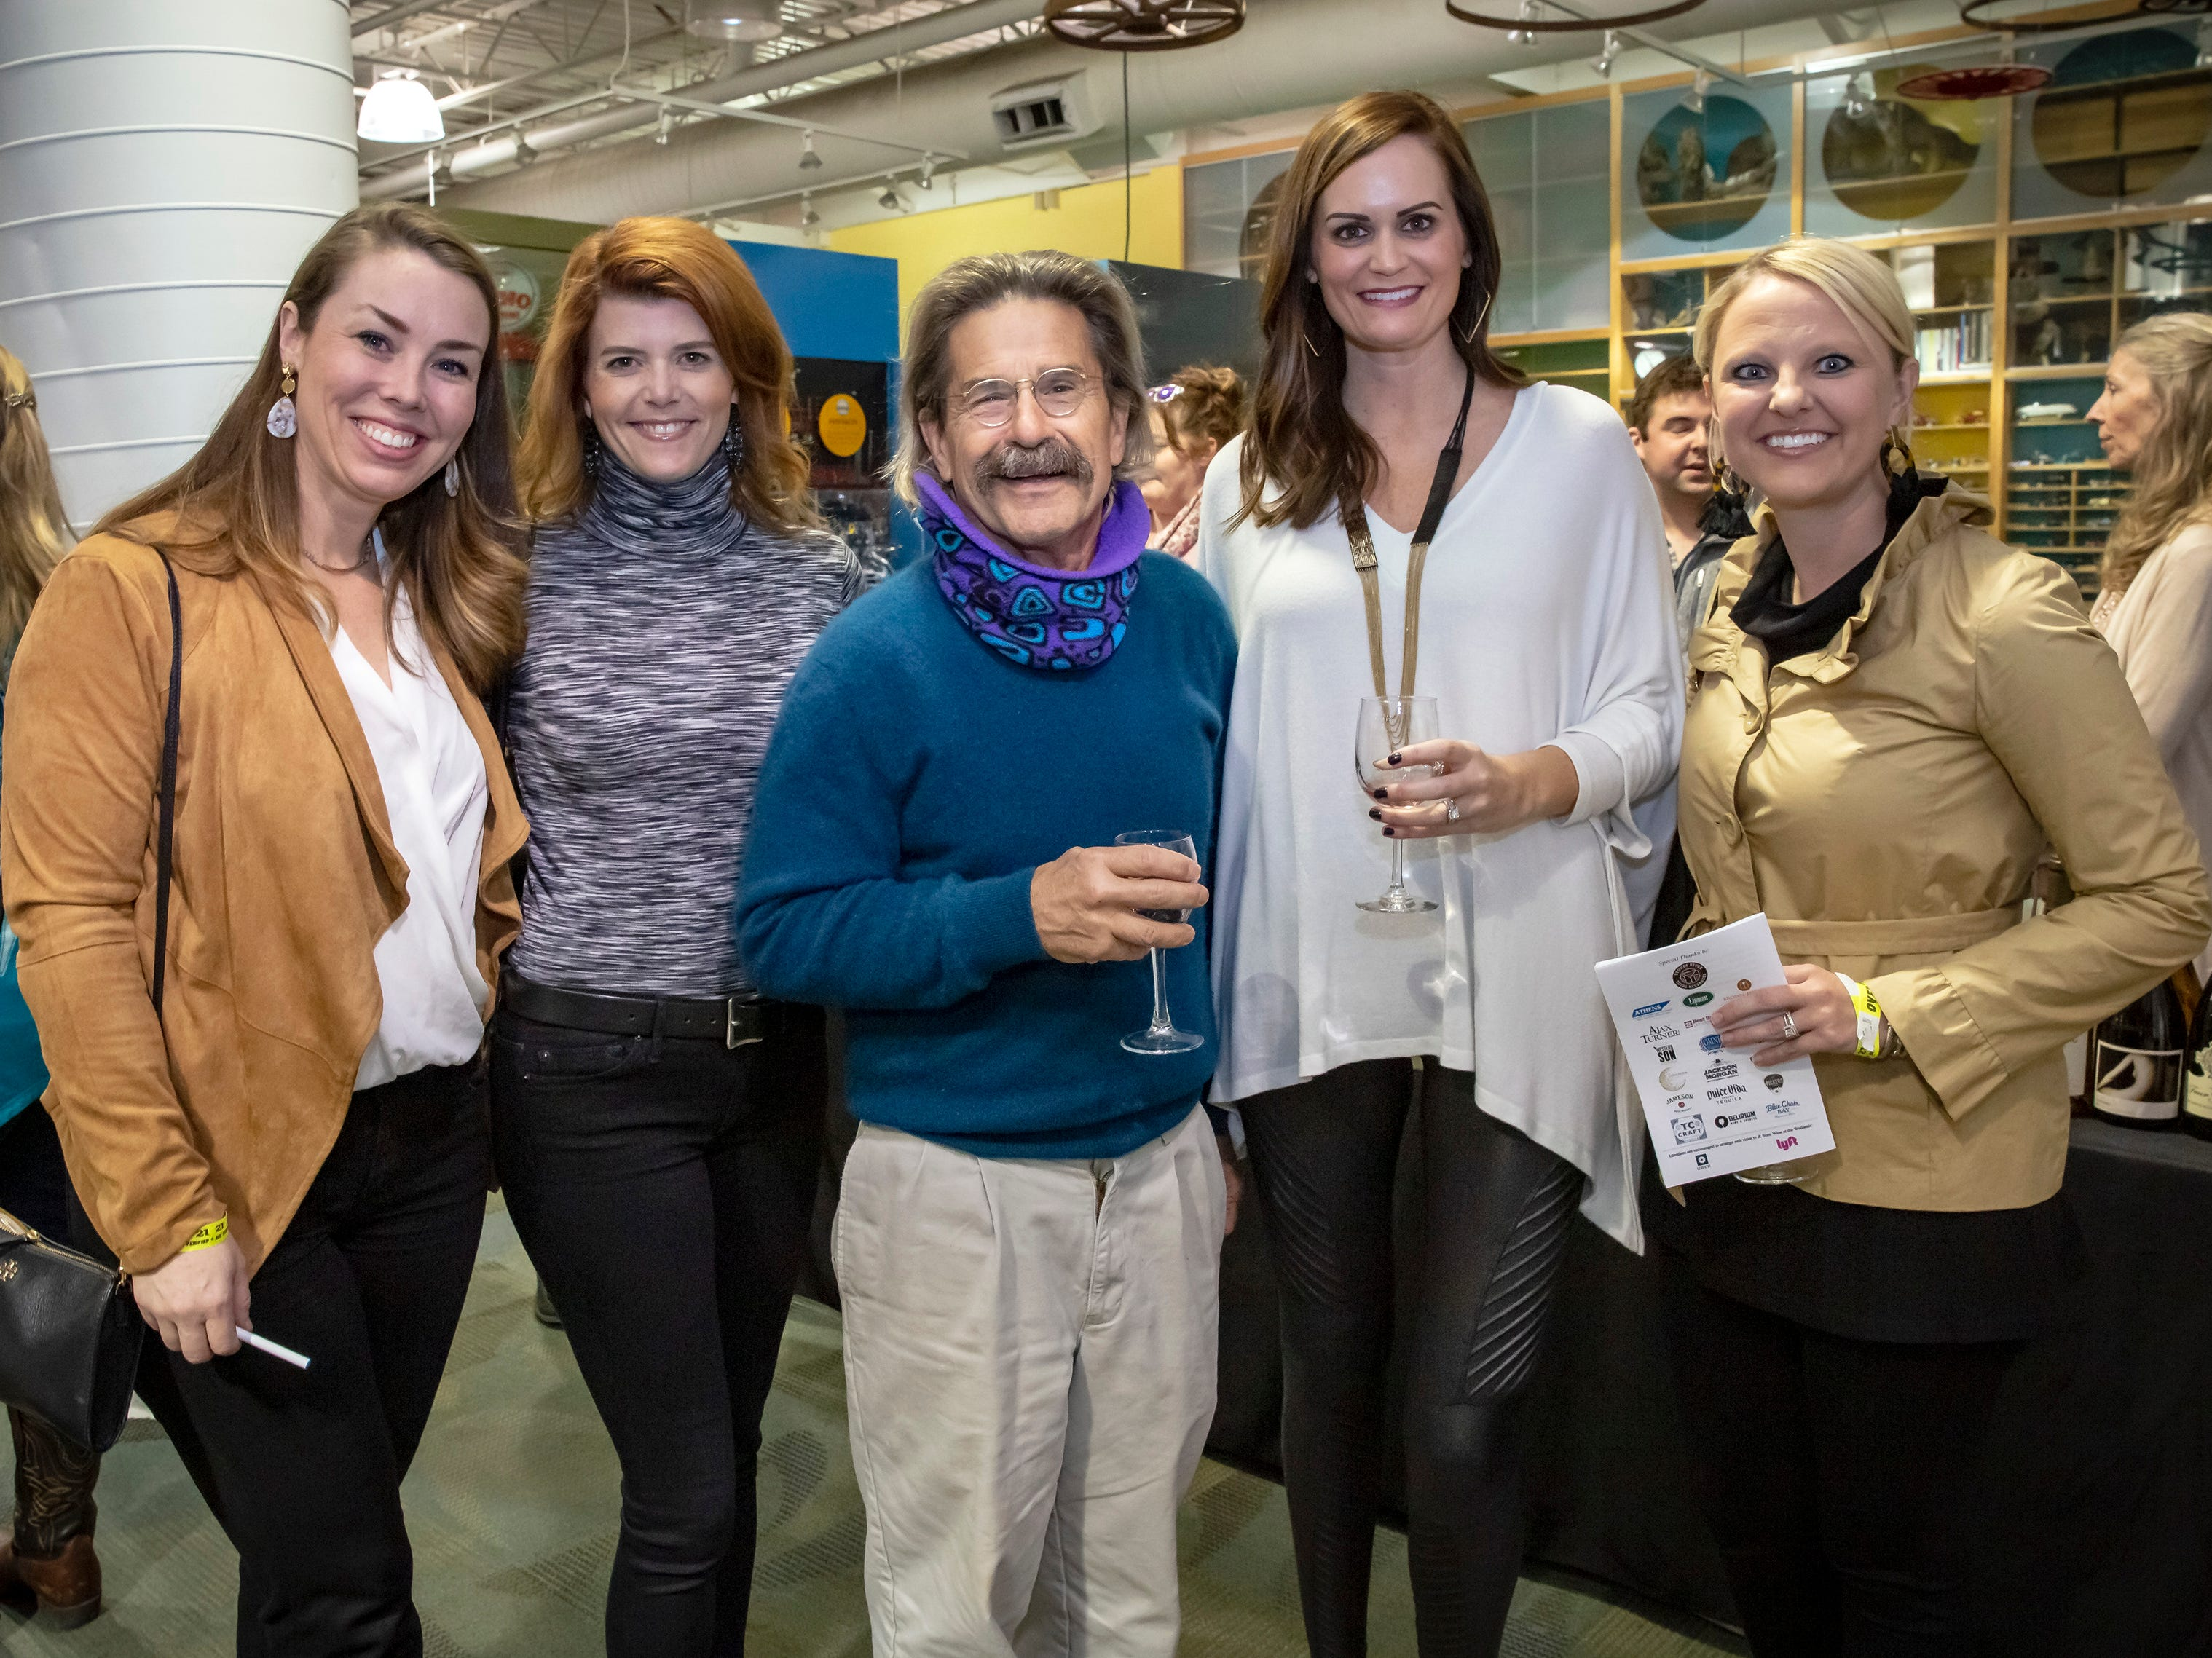 Gina DeJean, Lindsey Fournier, Dr. Joe Little, Kristen Taylor and Katherine Layman at the 6th annual Wine and Whiskey at the Wetlands event held at the Discovery Center.JIM DAVIS/for the DNJ